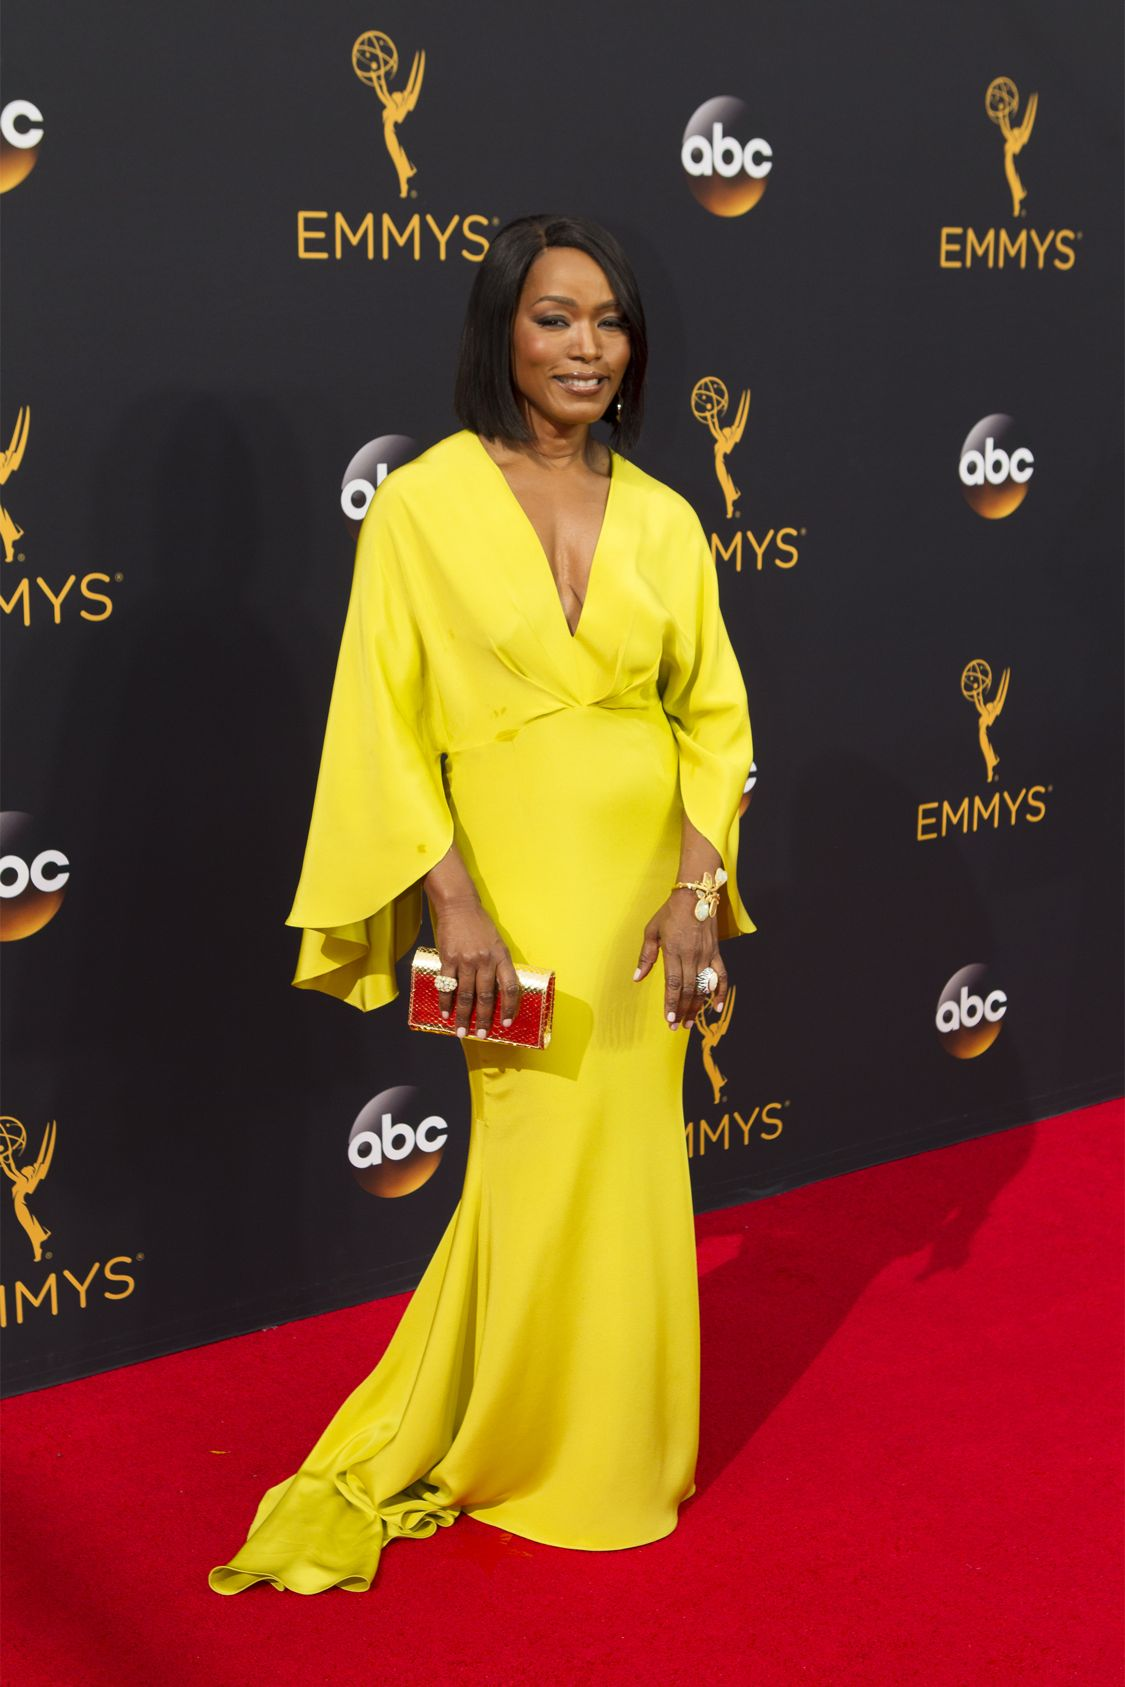 """THE 68TH EMMY(r) AWARDS - """"The 68th Emmy Awards"""" broadcasts live from The Microsoft Theater in Los Angeles, Sunday, September 18 (7:00-11:00 p.m. EDT/4:00-8:00 p.m. PDT), on ABC and is hosted by Jimmy Kimmel. (ABC/Rick Rowell) ANGELA BASSETT"""